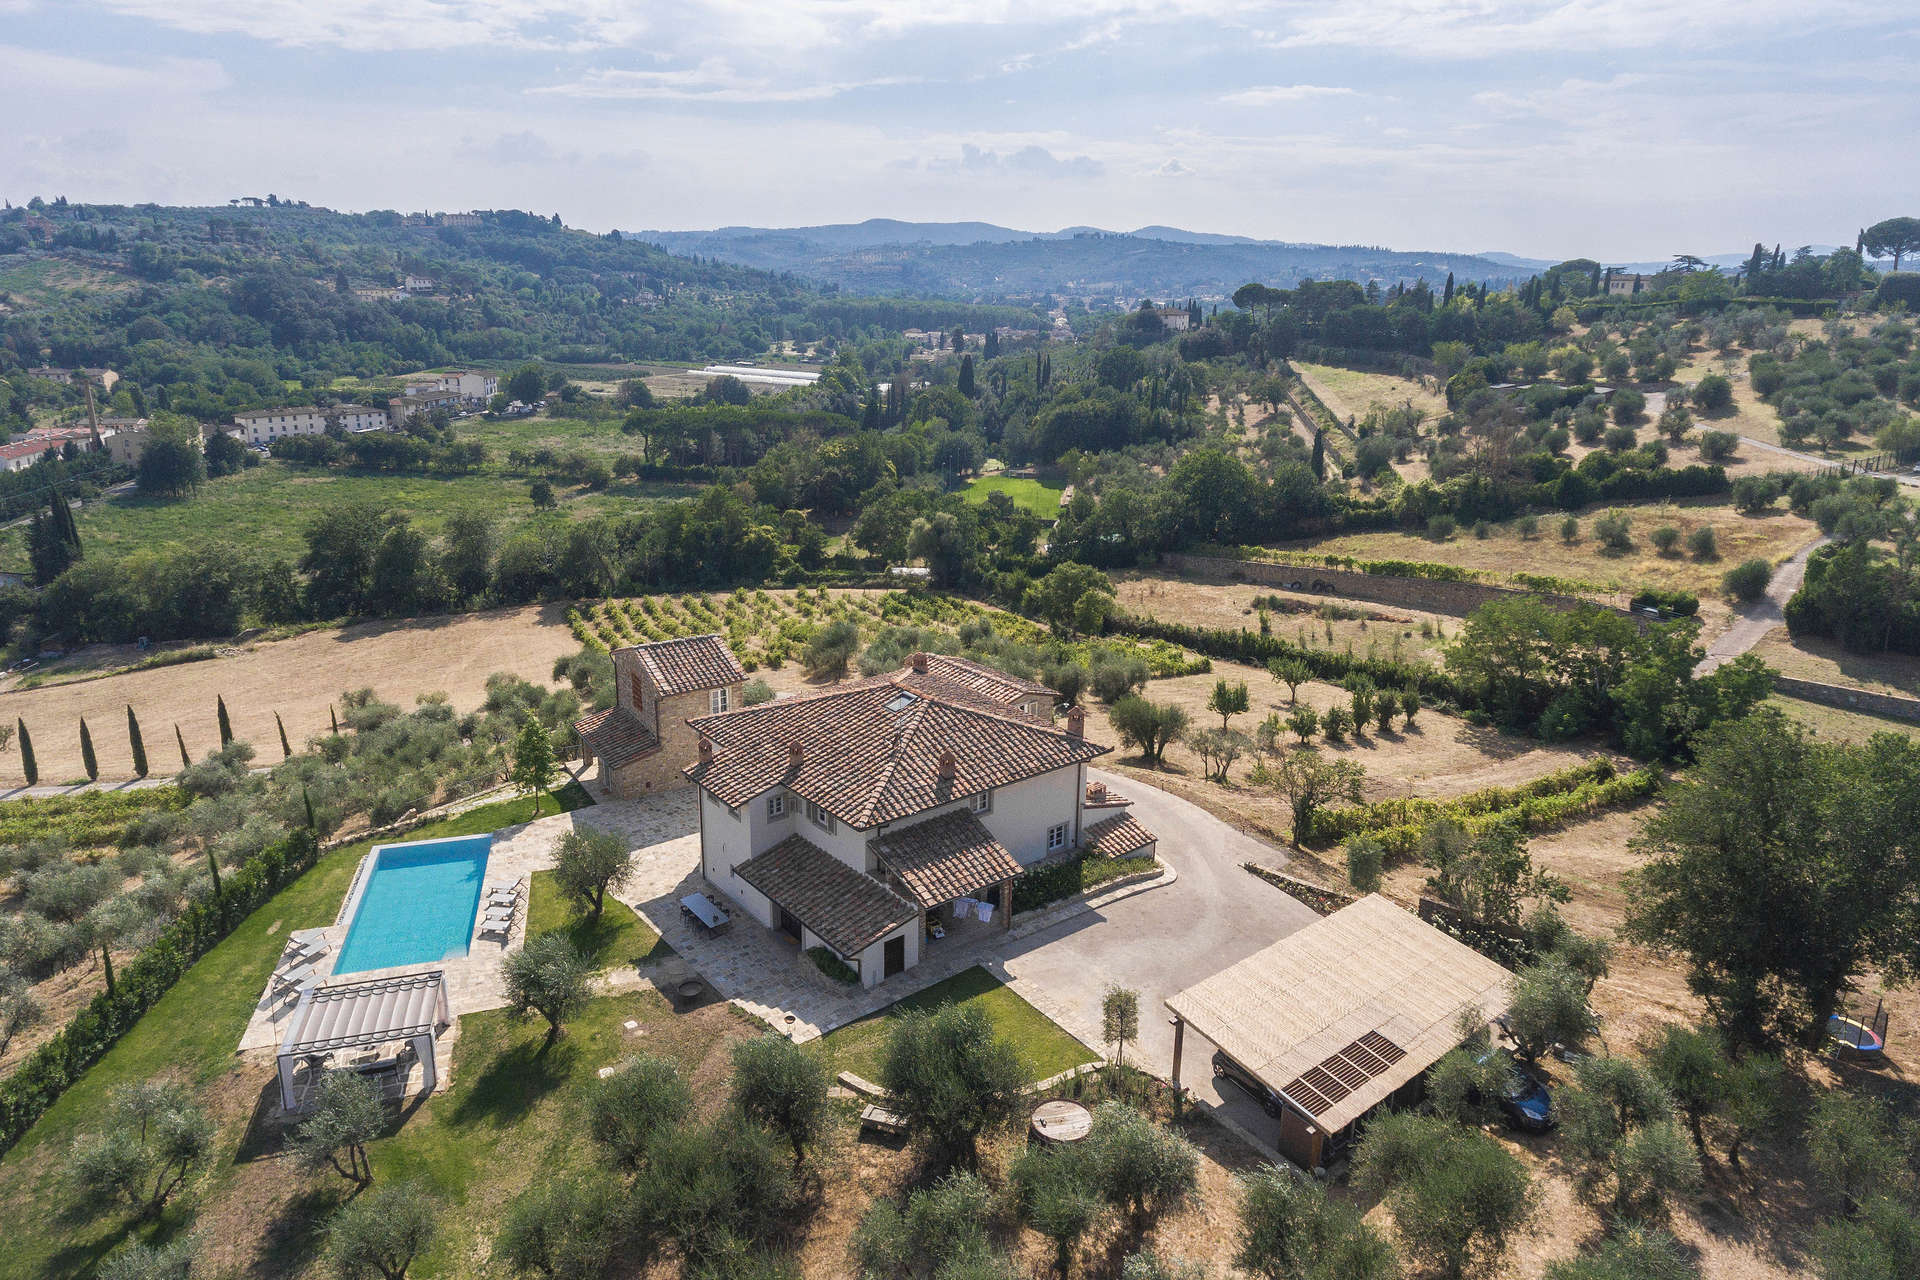 Luxury vacation rentals europe - Italy - Tuscany - Florence - Ione - Image 1/25